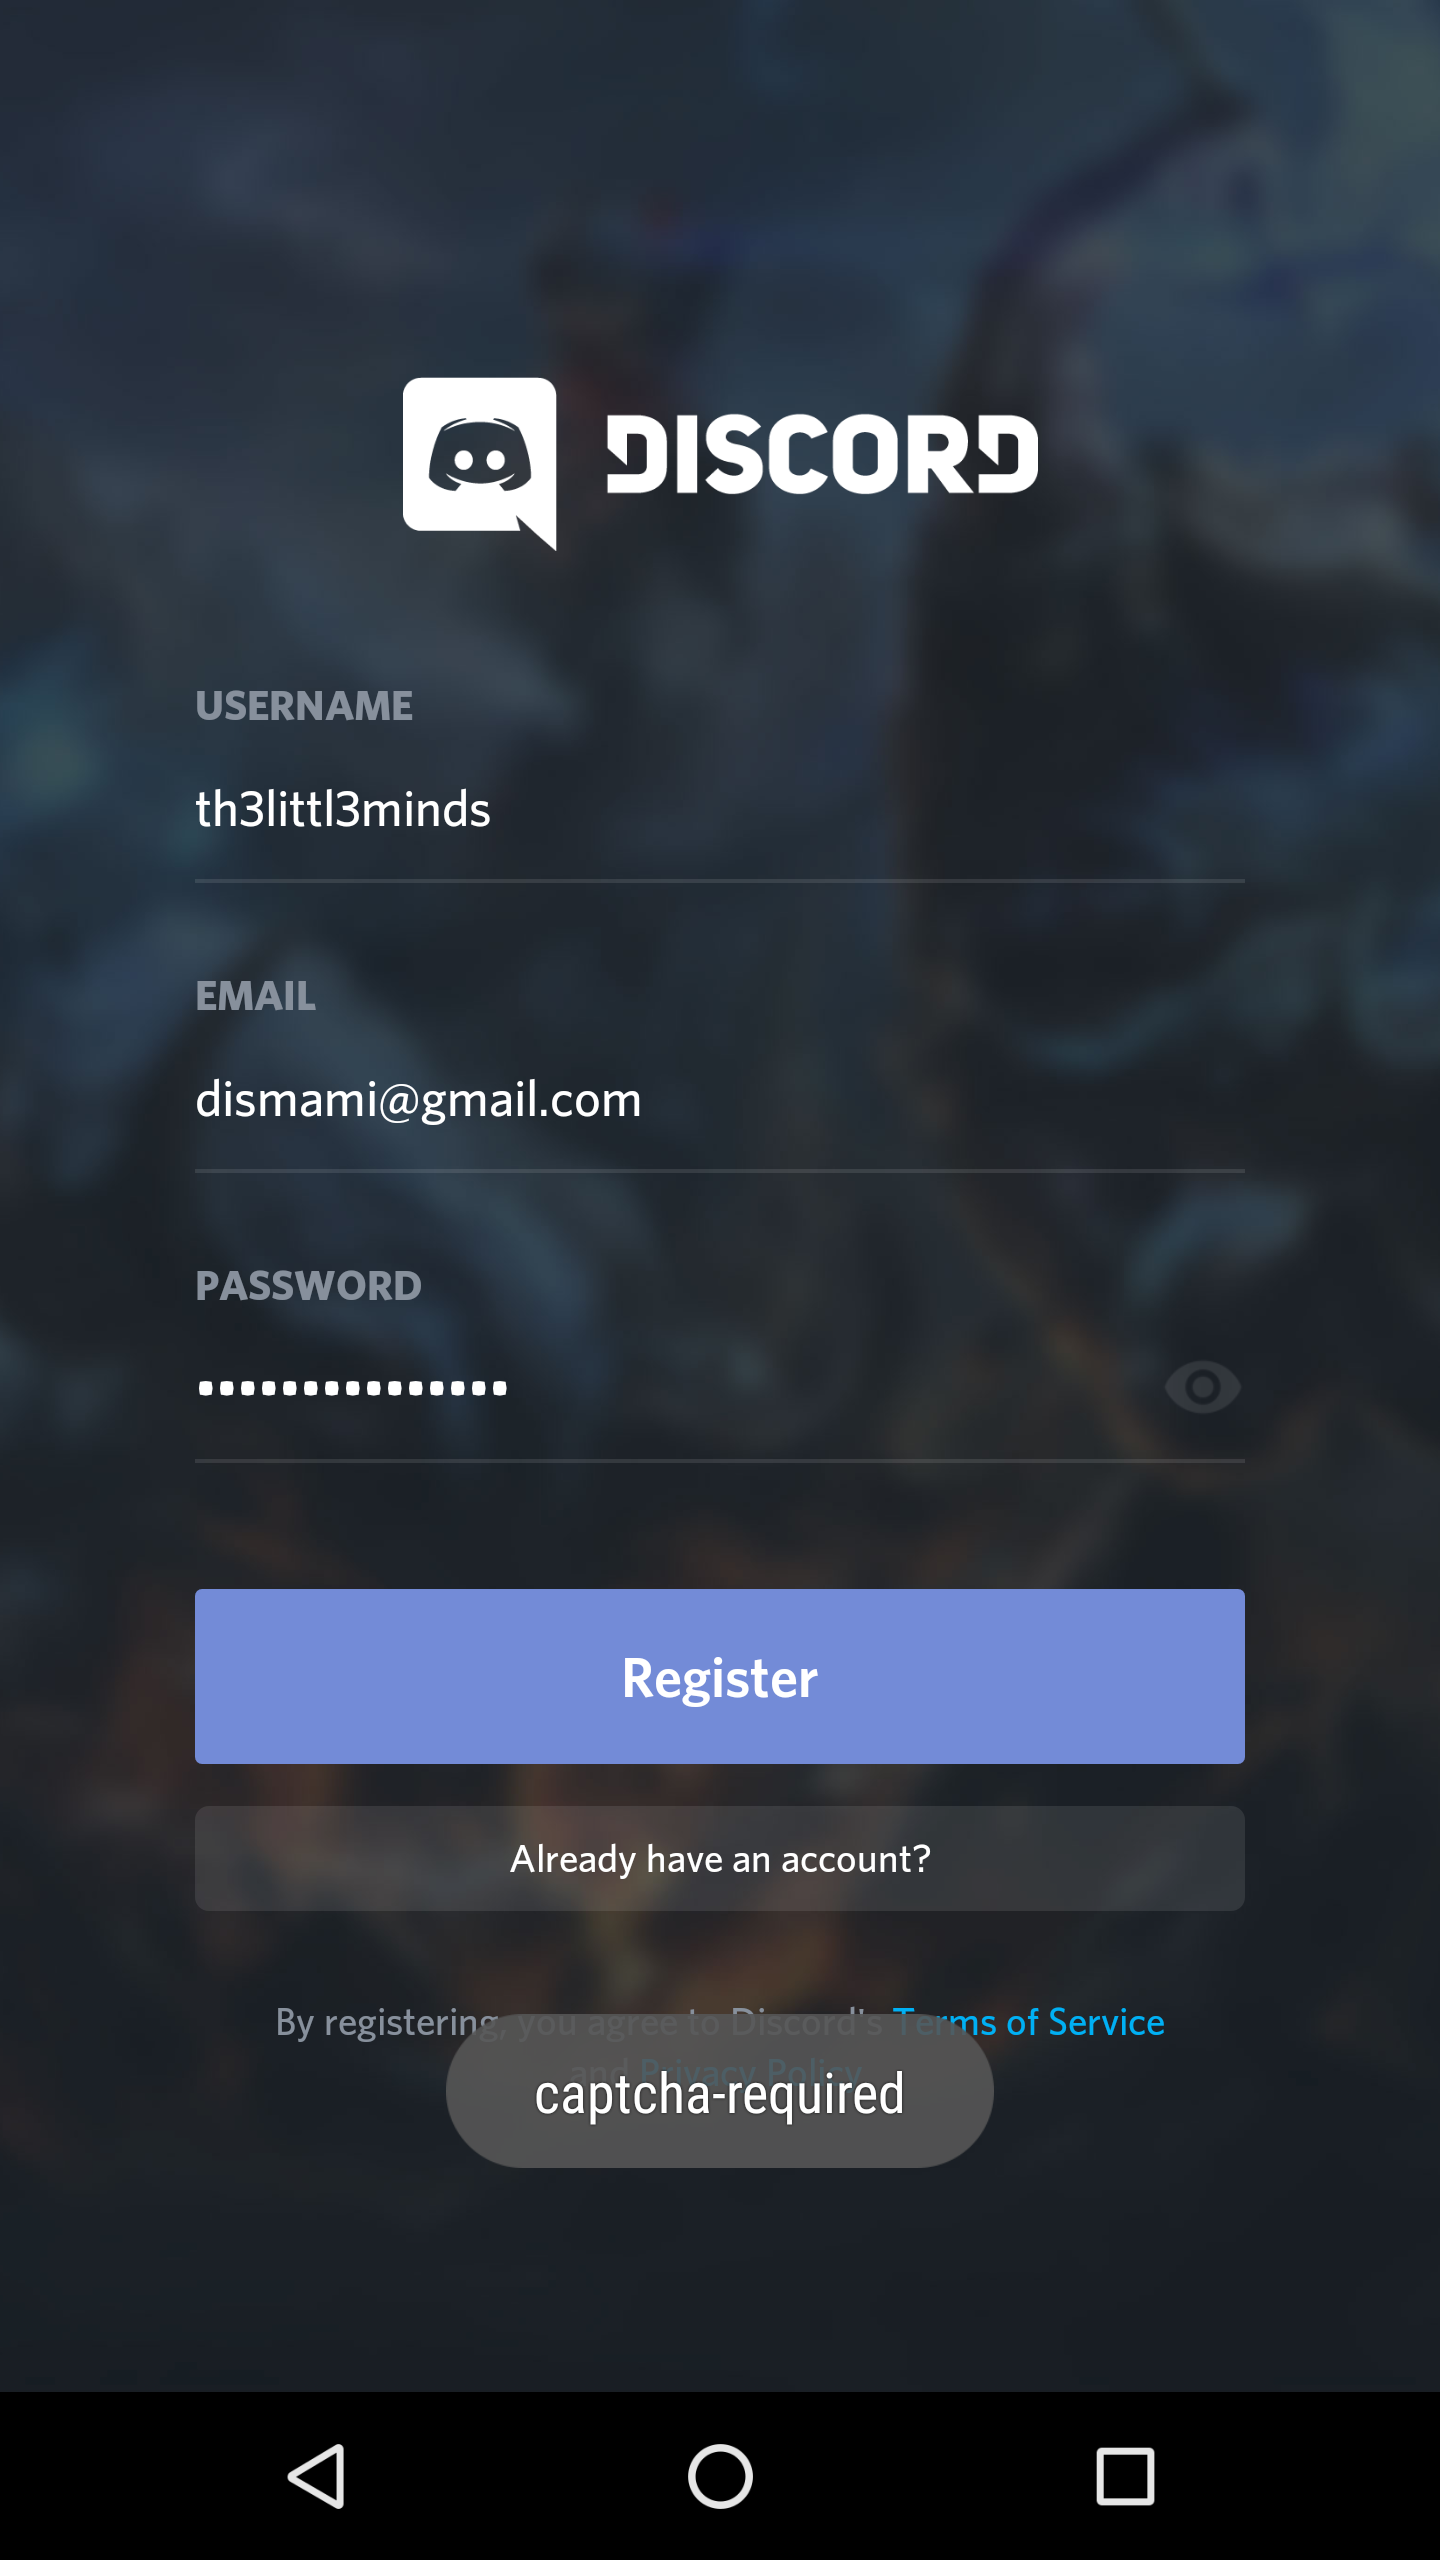 required captcha is not visible in discord app